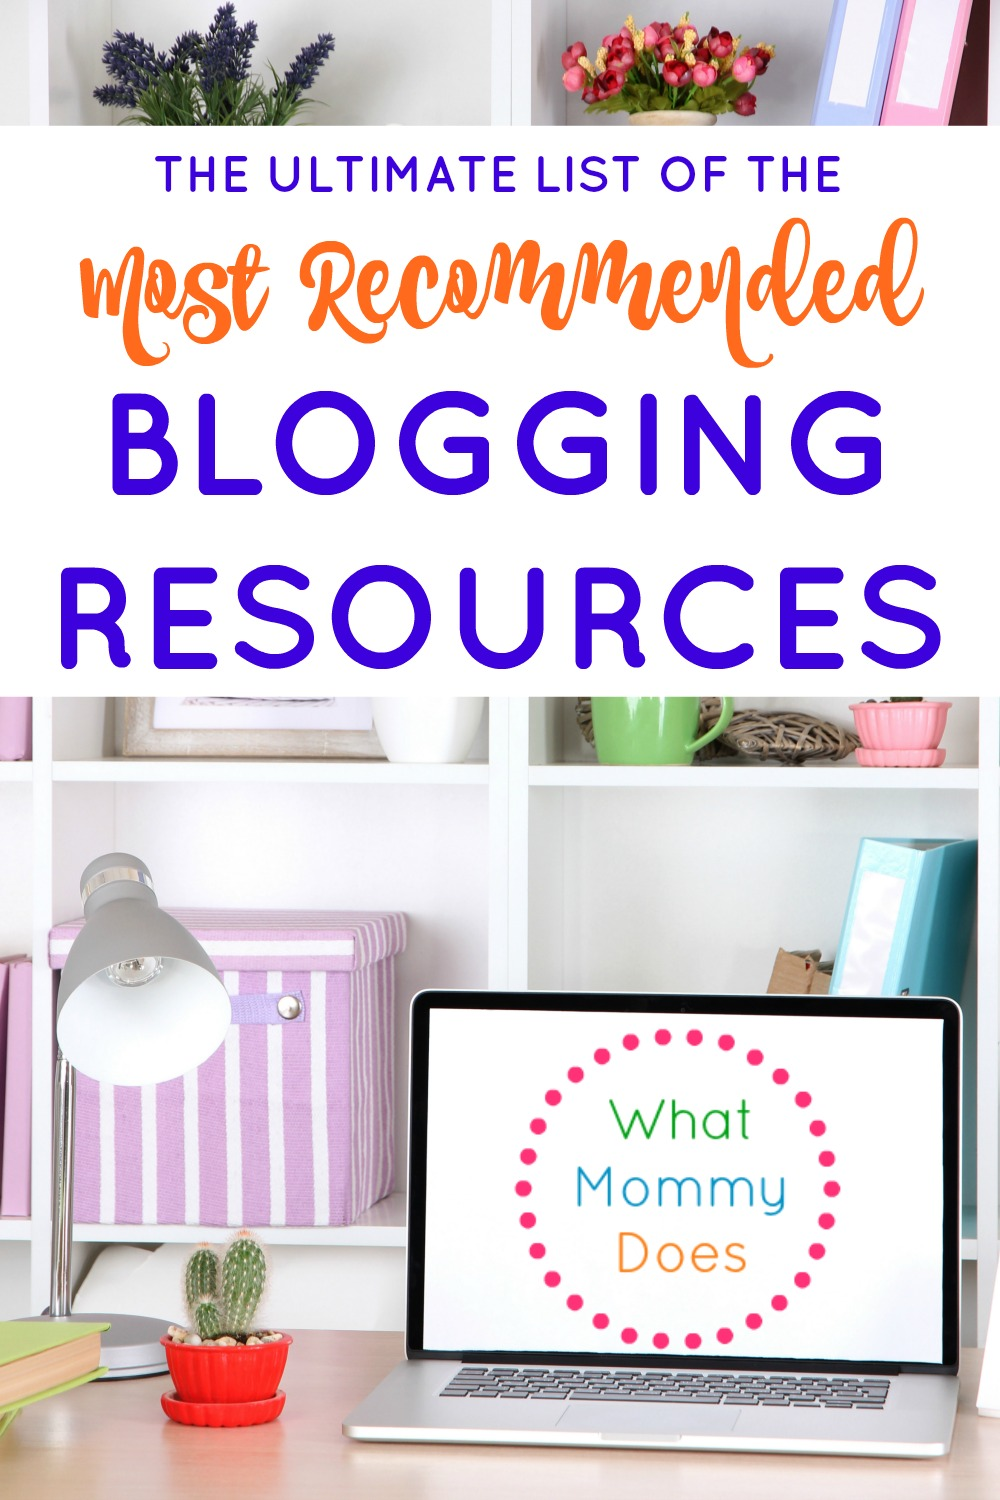 Get the most recommended blogging resources and tips to help you make money and increase your blog traffic!